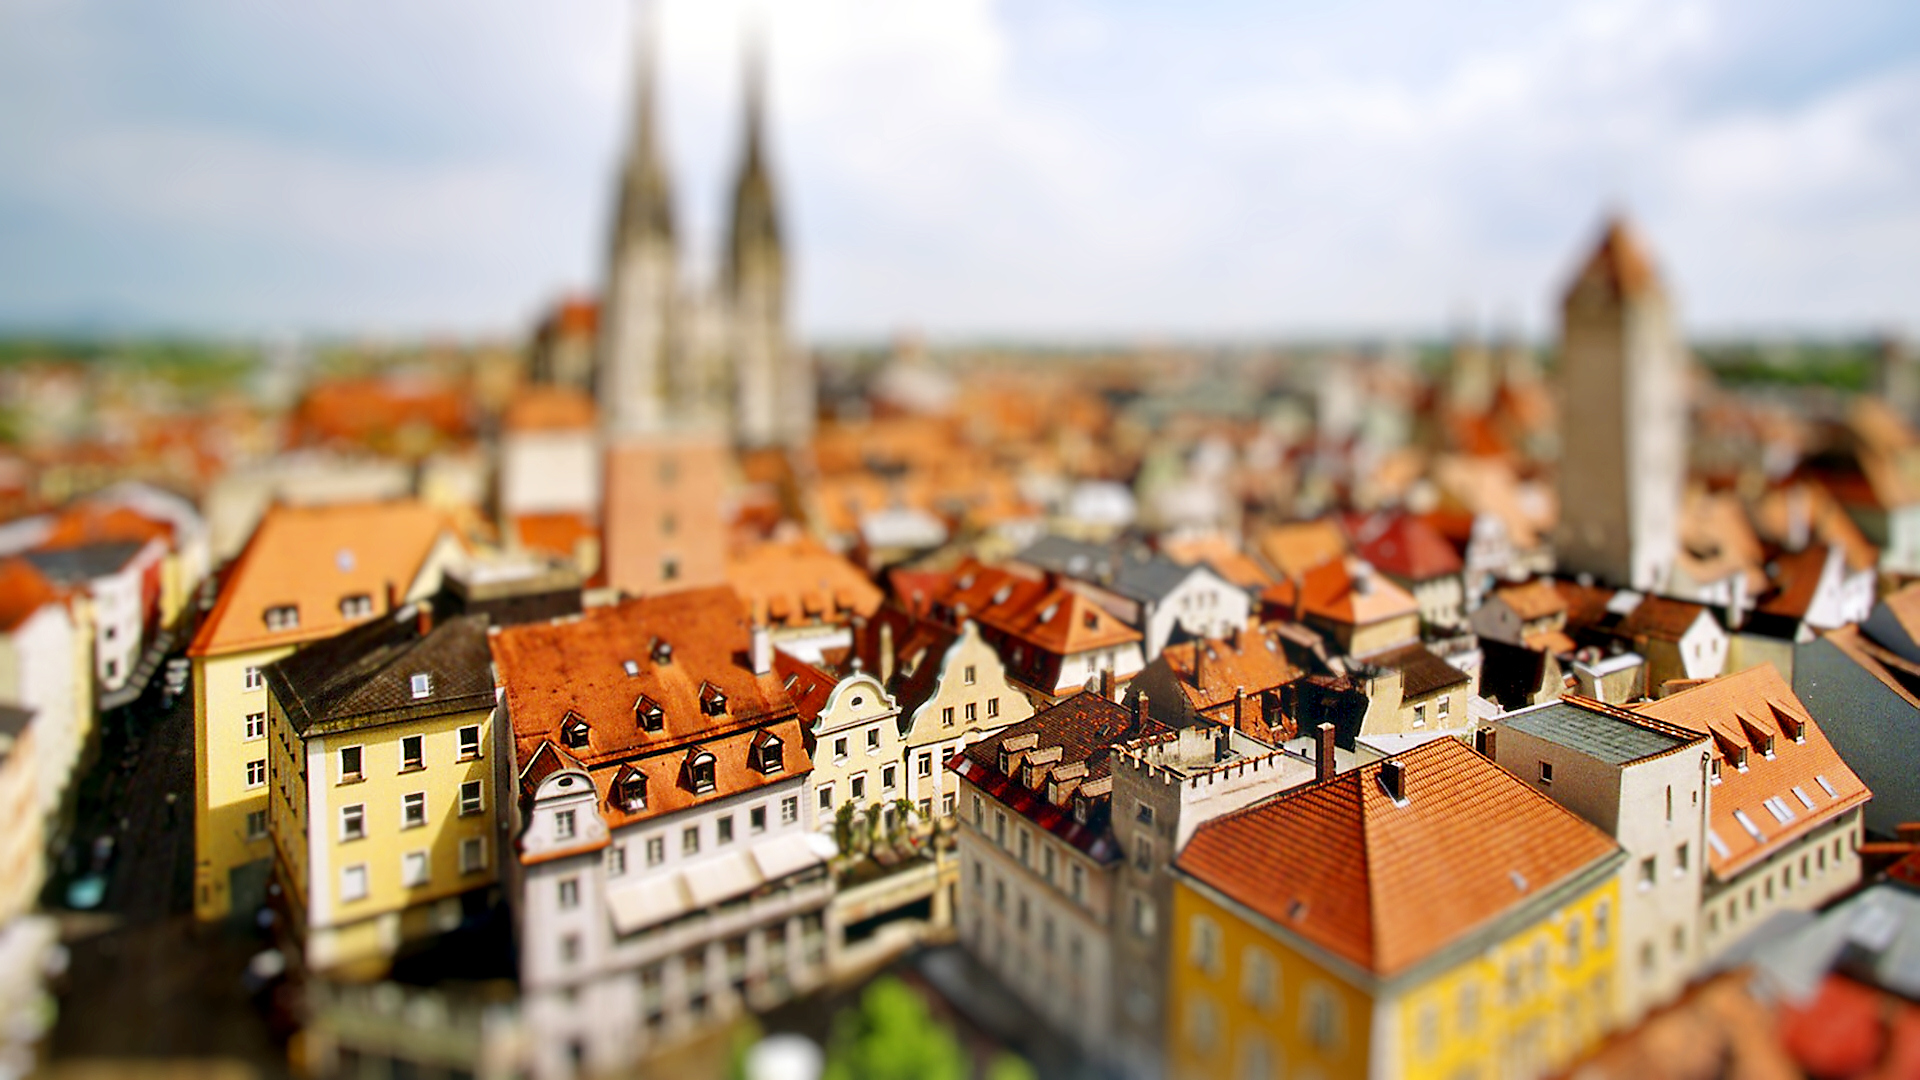 ... Tilt Shift Wallpaper · Tilt Shift Wallpaper